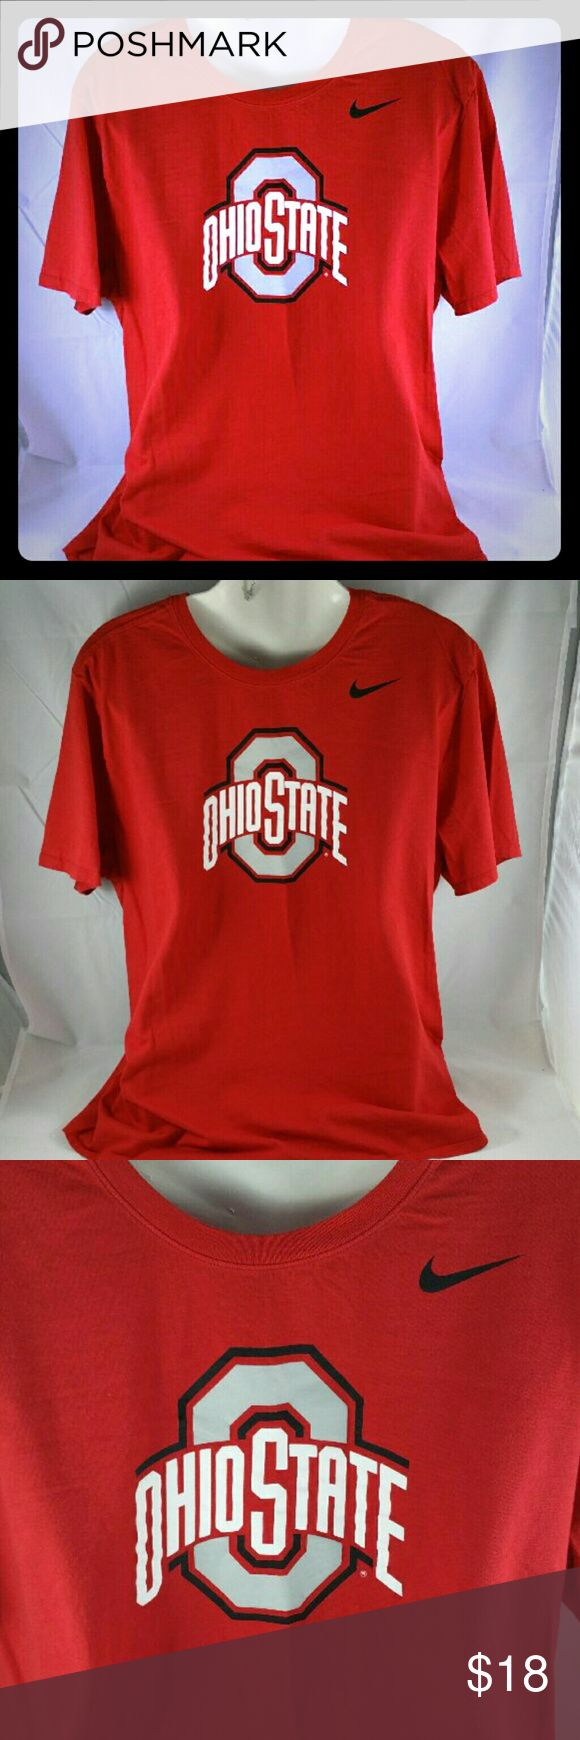 Ohio State Tee Ohio State short sleeve t-shirt  Size - XL Great condition = no flaws, fades, cracking, stains facebook.com/CombsConnection/shop Nike Shirts Tees - Short Sleeve